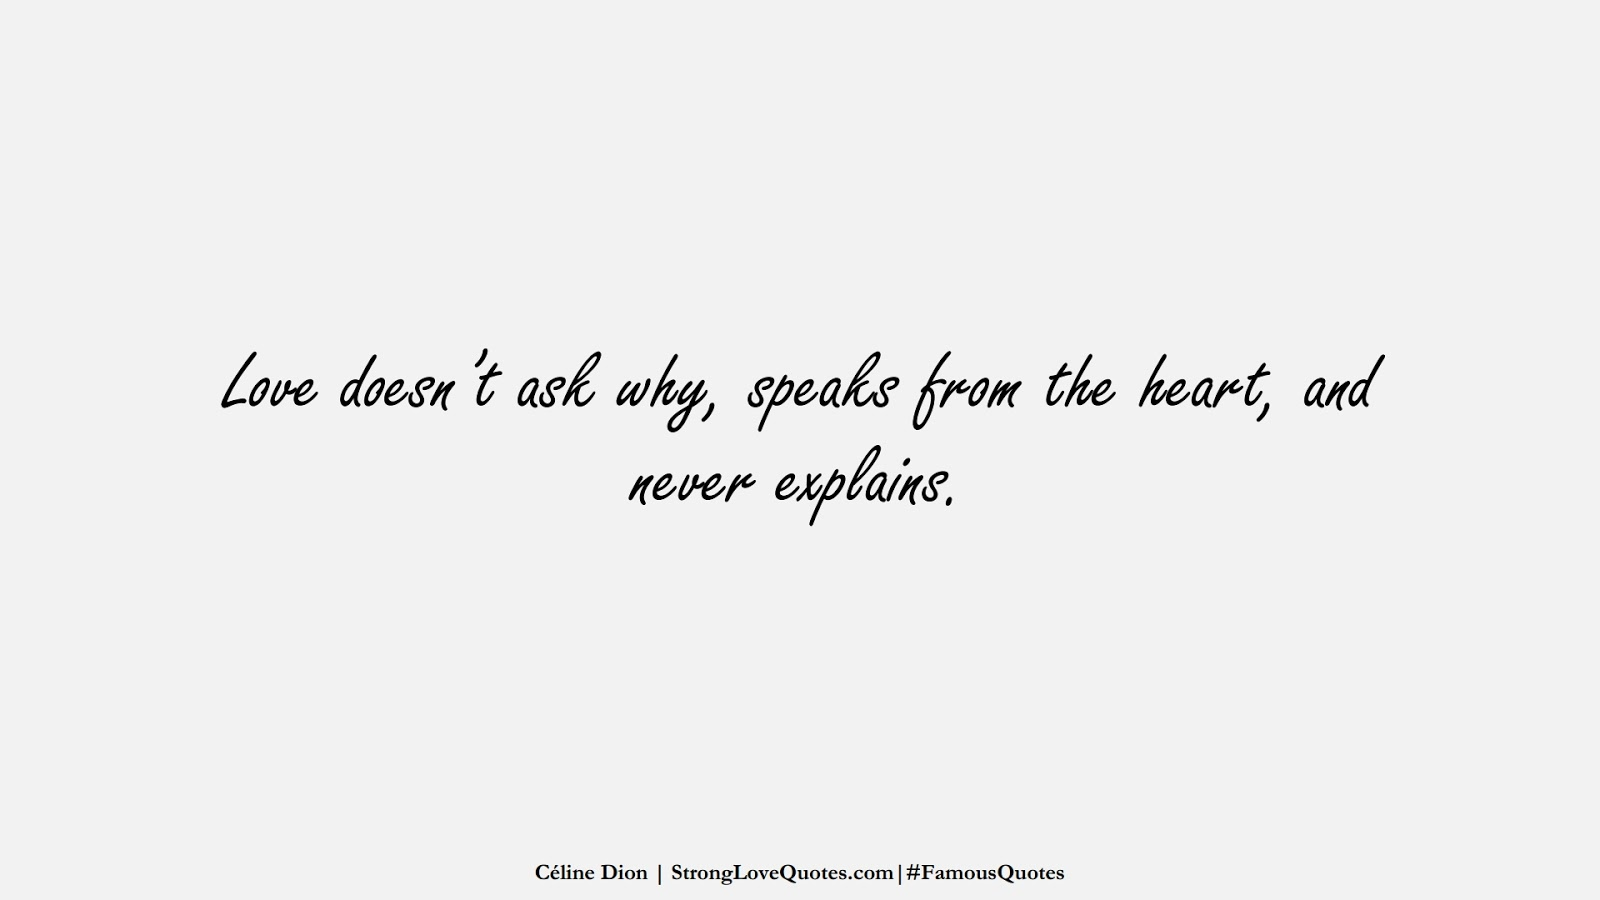 Love doesn't ask why, speaks from the heart, and never explains. (Céline Dion);  #FamousQuotes